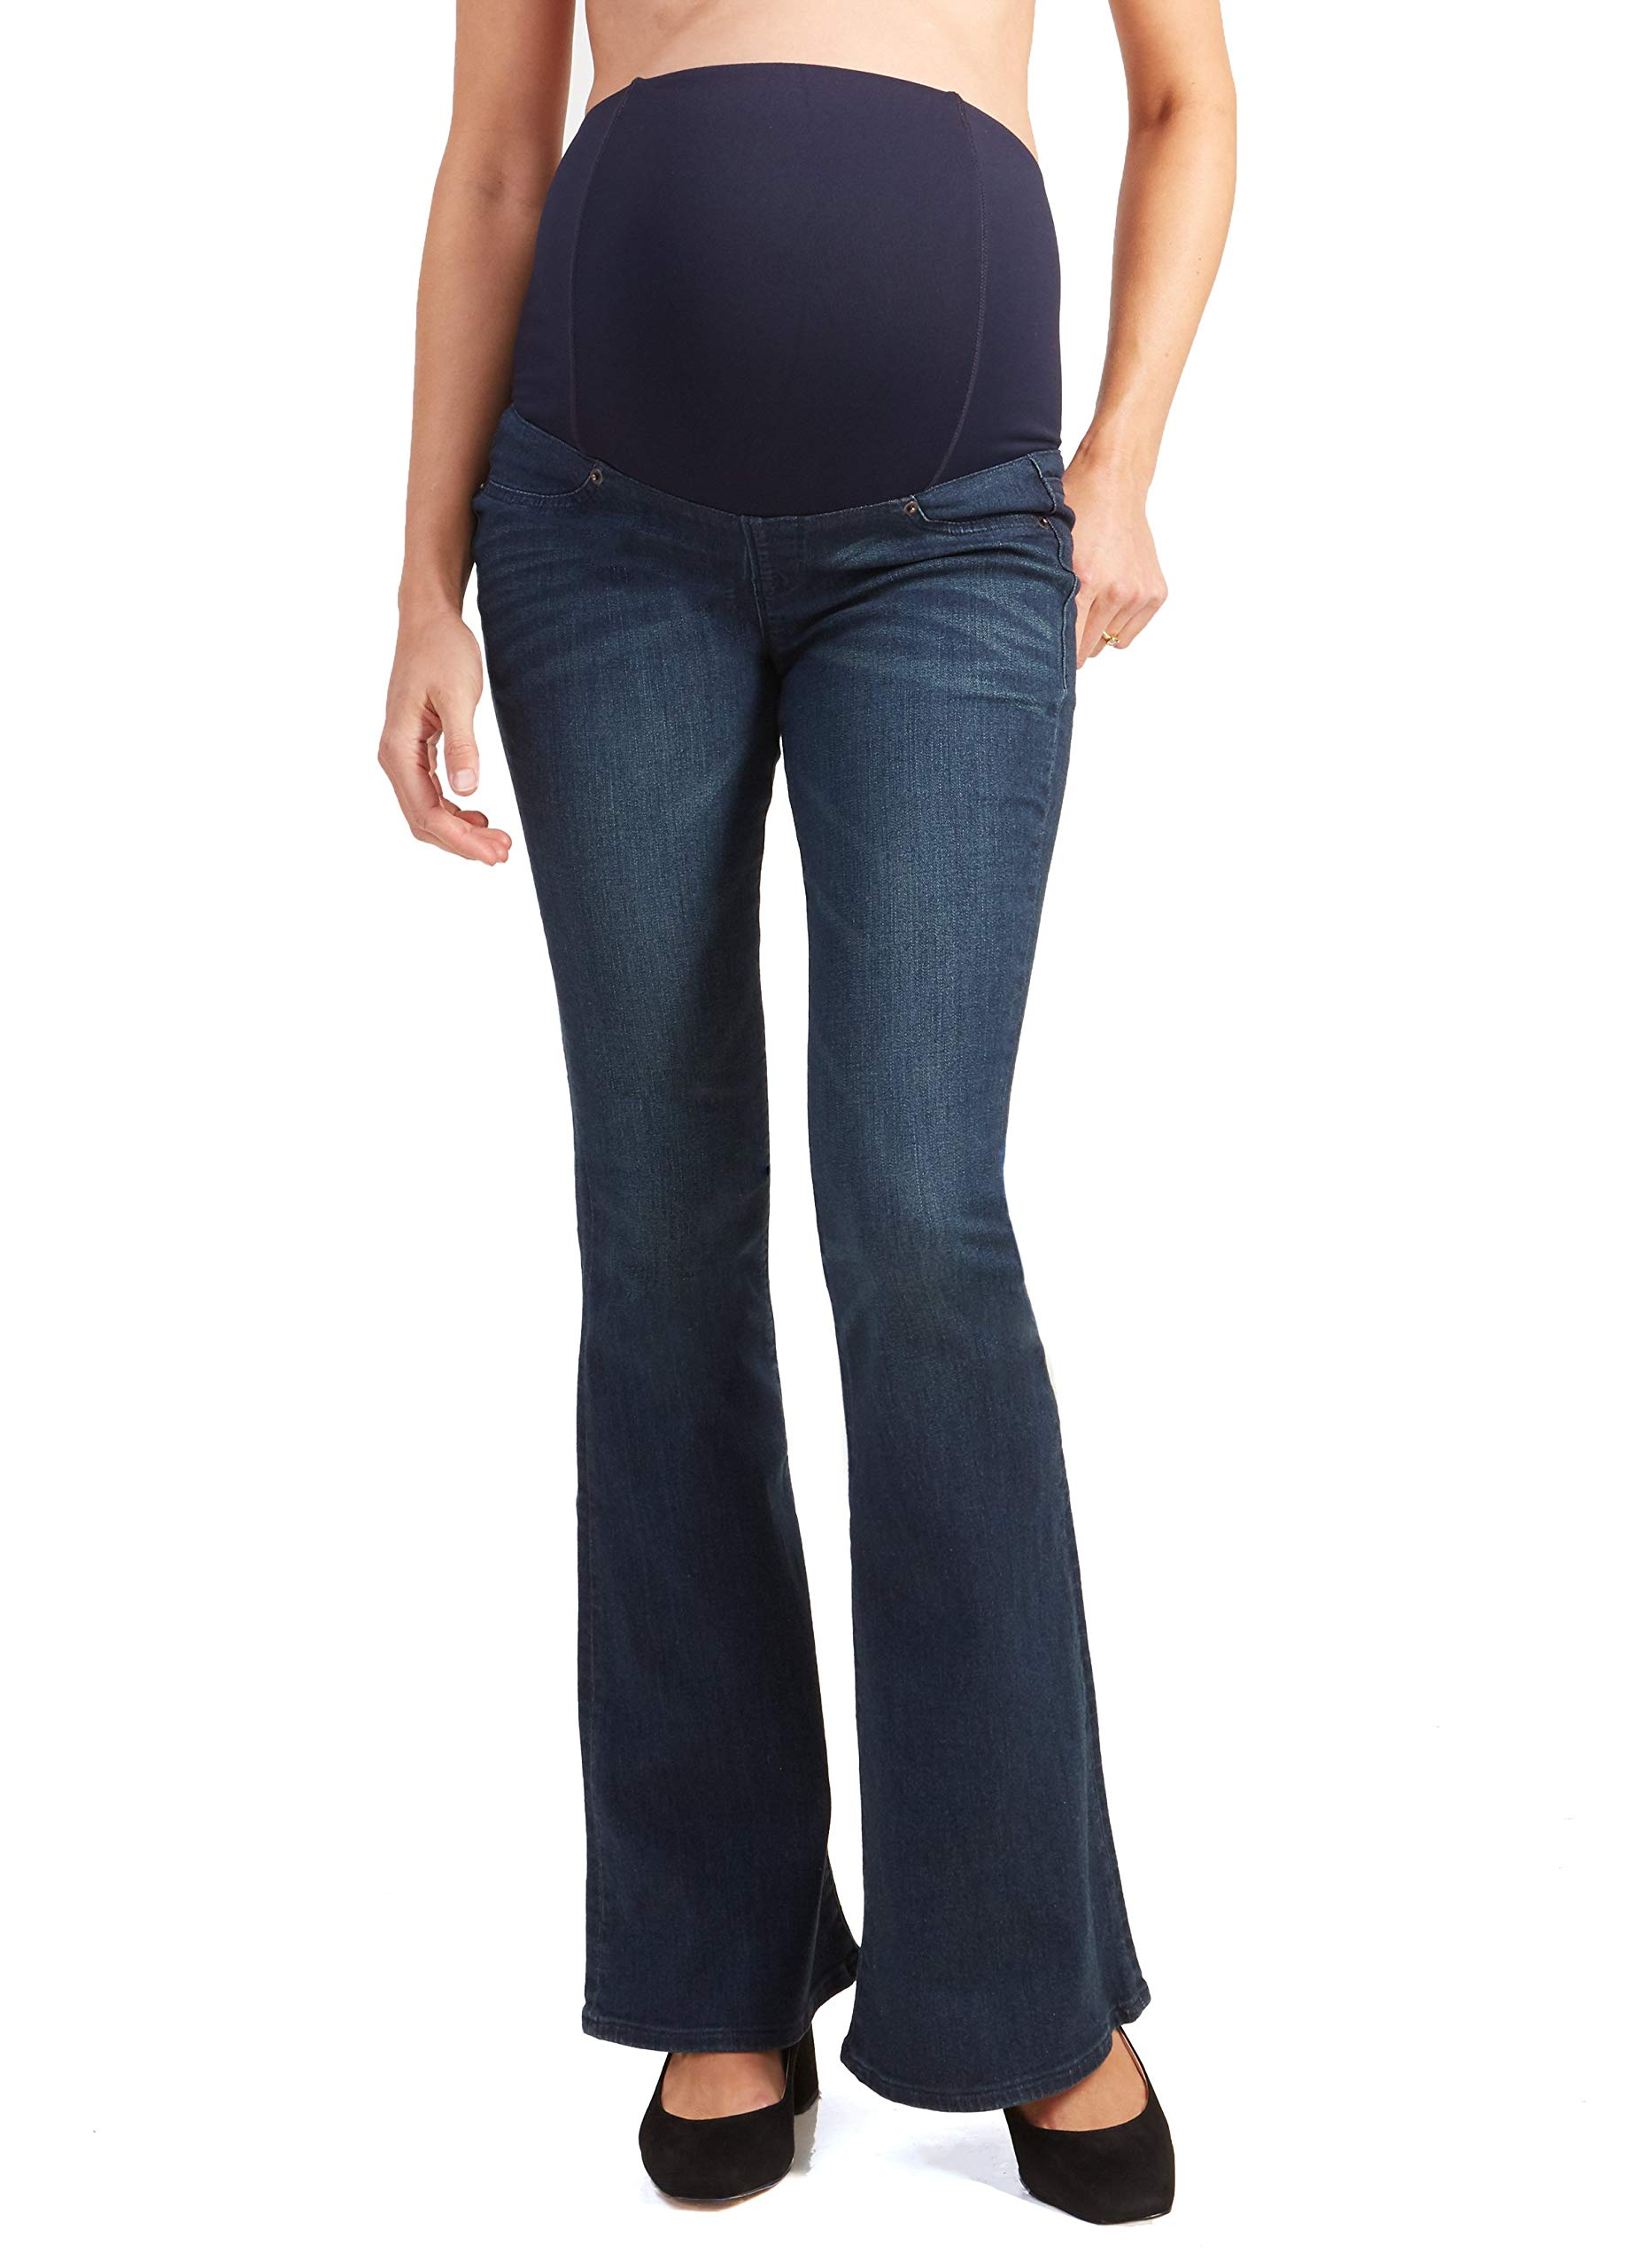 Ingrid & Isabel Womens Maternity Flare Jeans with Crossover Panel - True Blue by Ingrid & Isabel